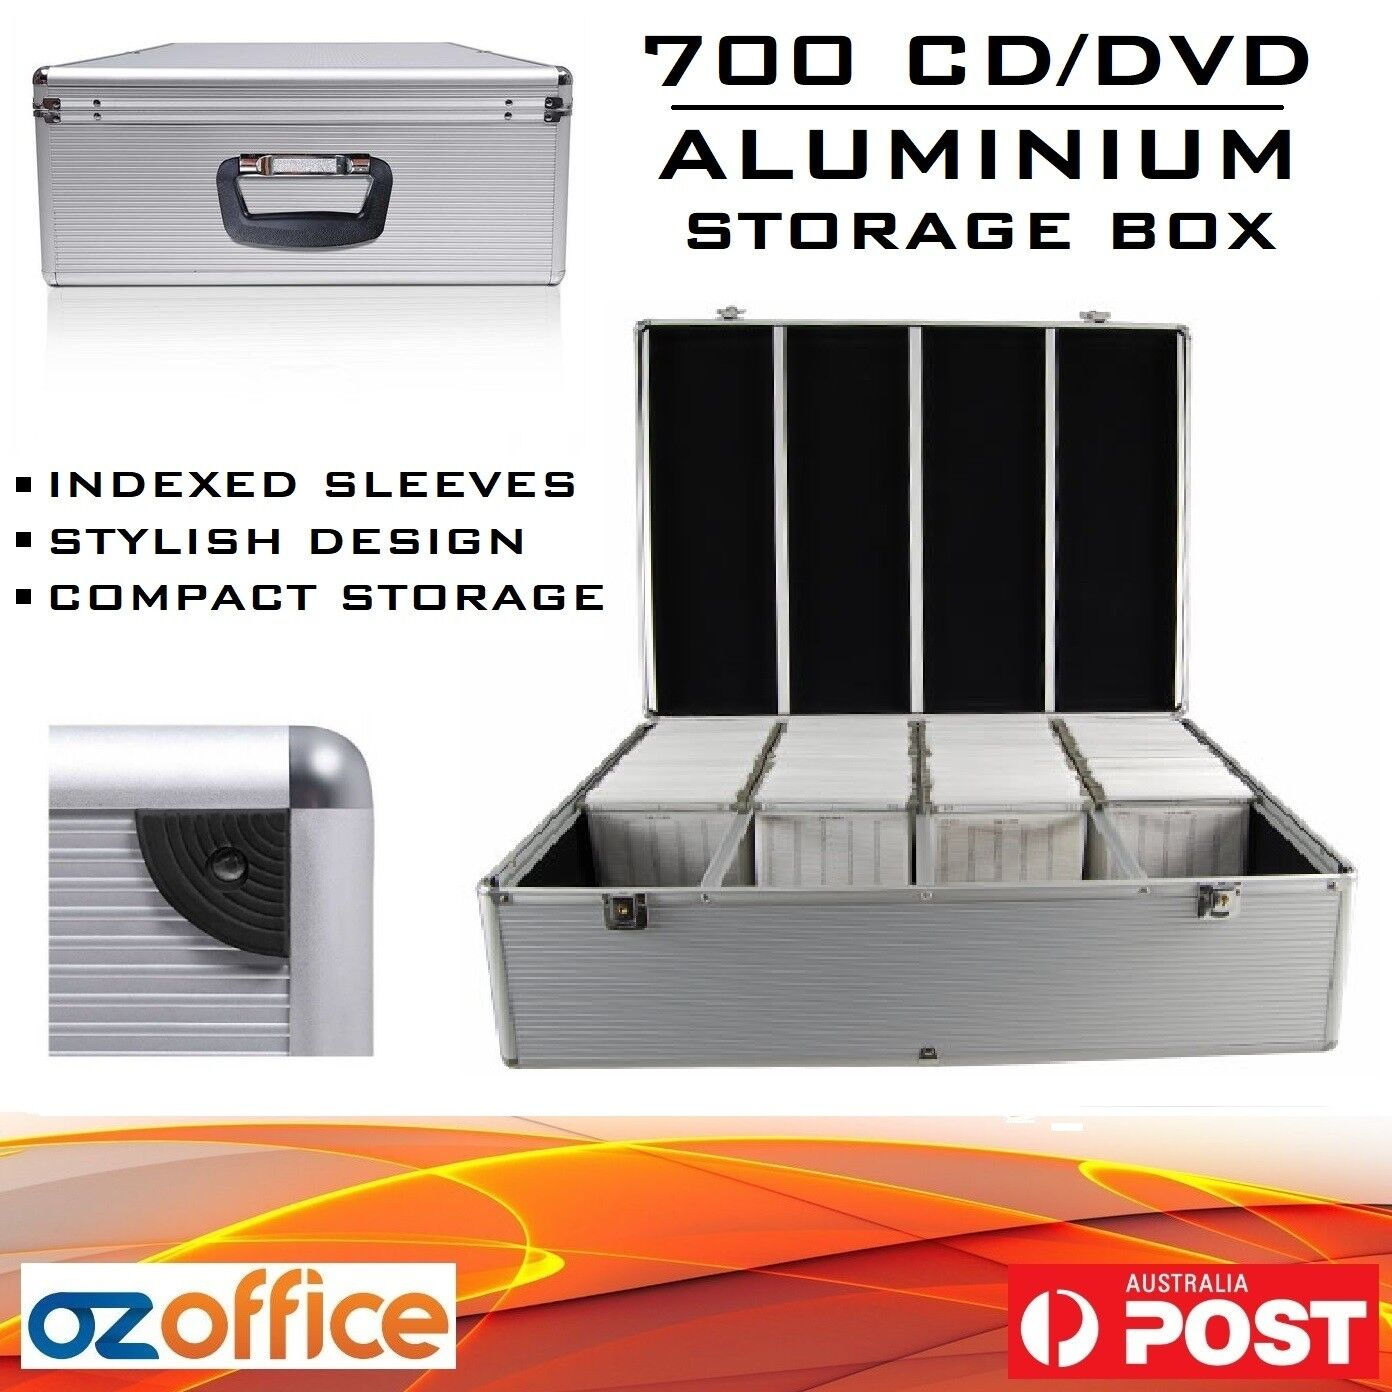 Dvd Storage Boxes Australia Details About Brand New Aluminium 700 X Cd Dvd Blu Ray Storage Box Lock Case Black Or Silver